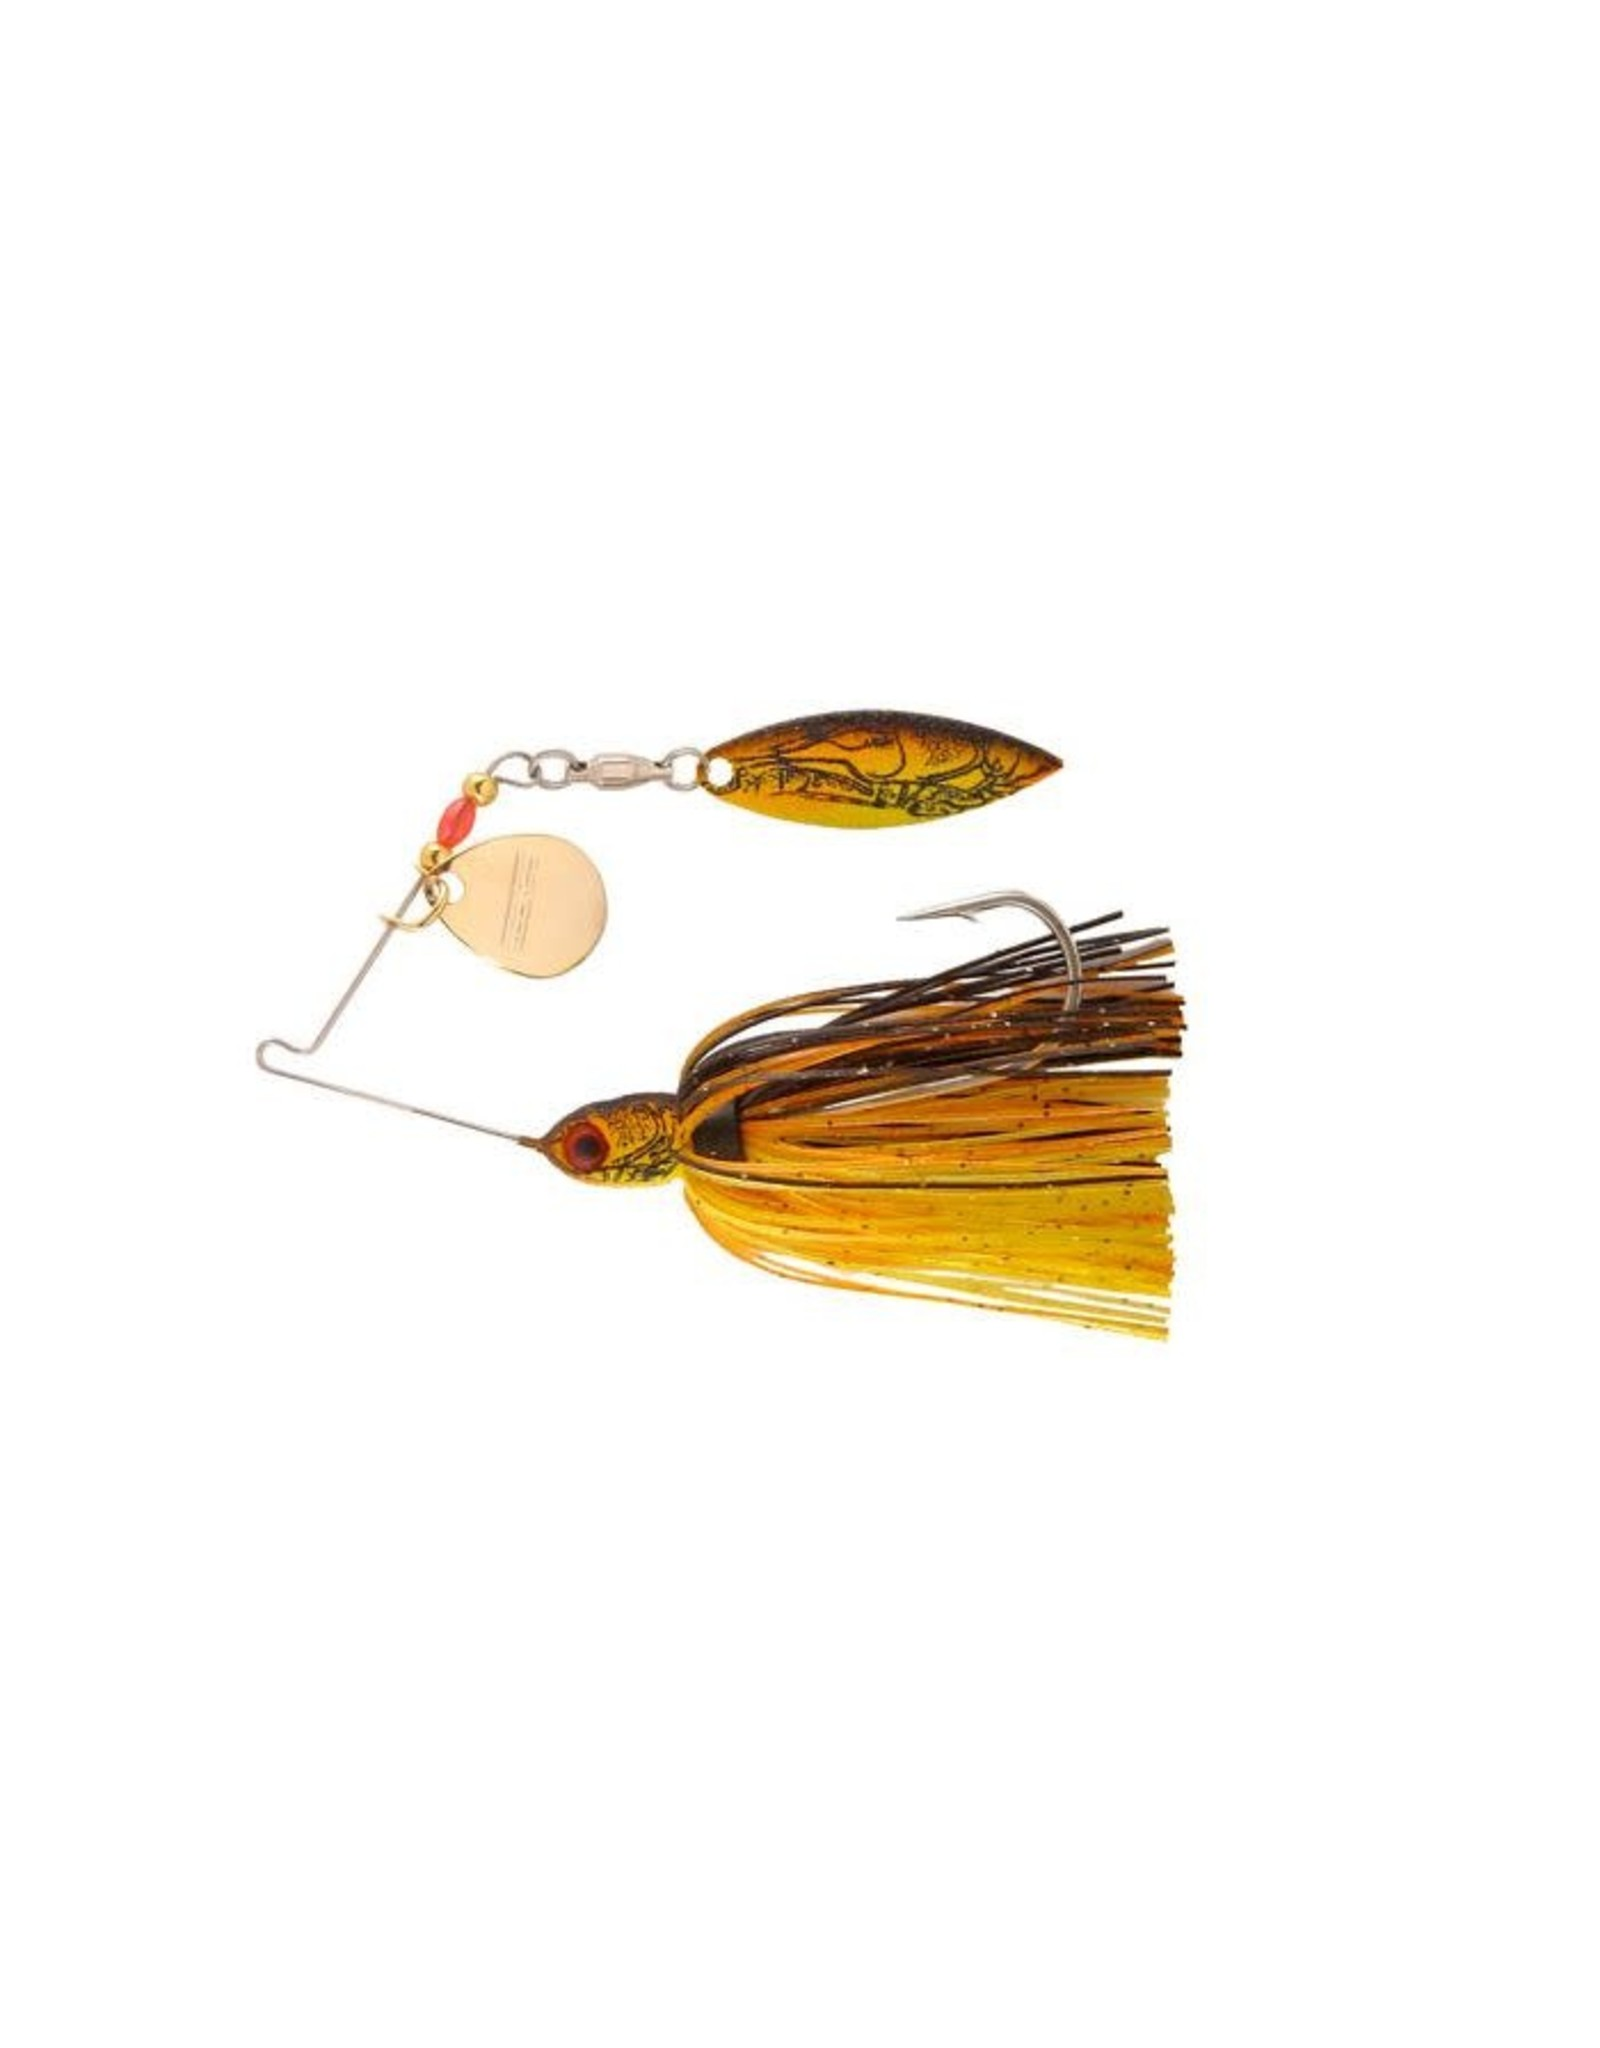 Booyah Booyah Pond Magic Spinnerbait